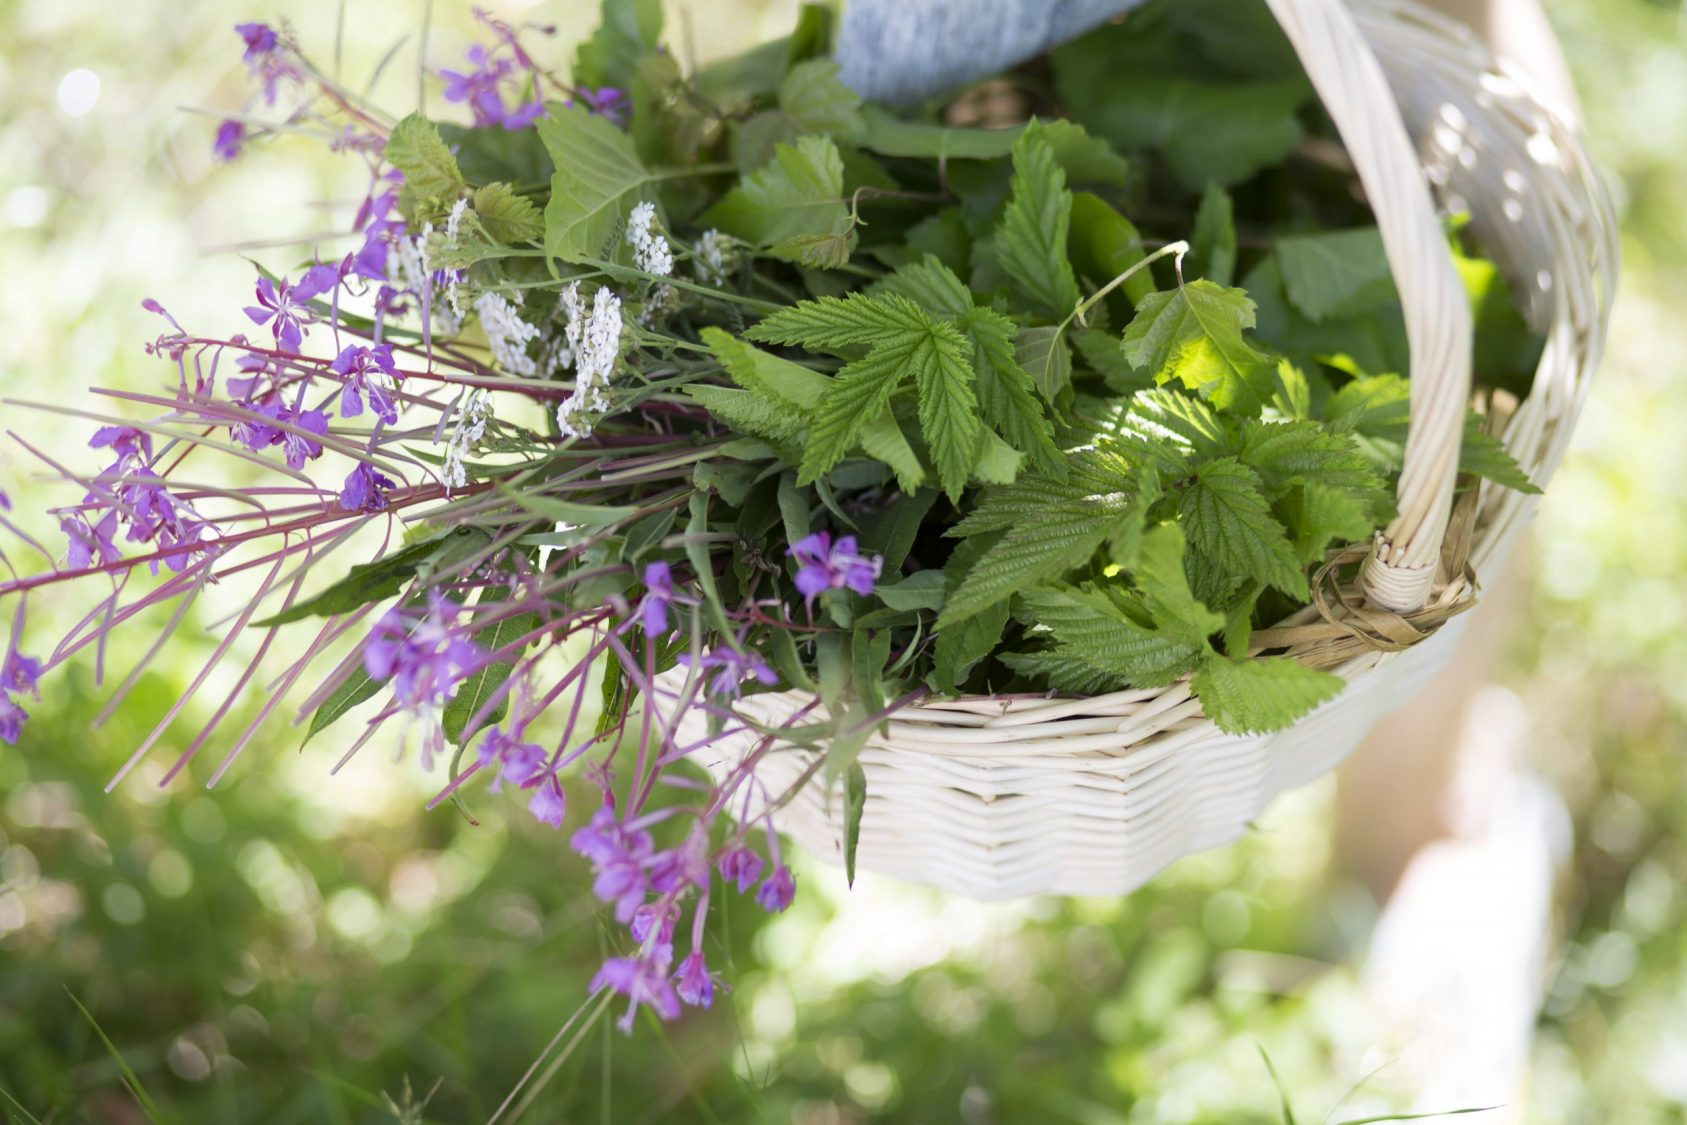 herbs and flowers in a basket